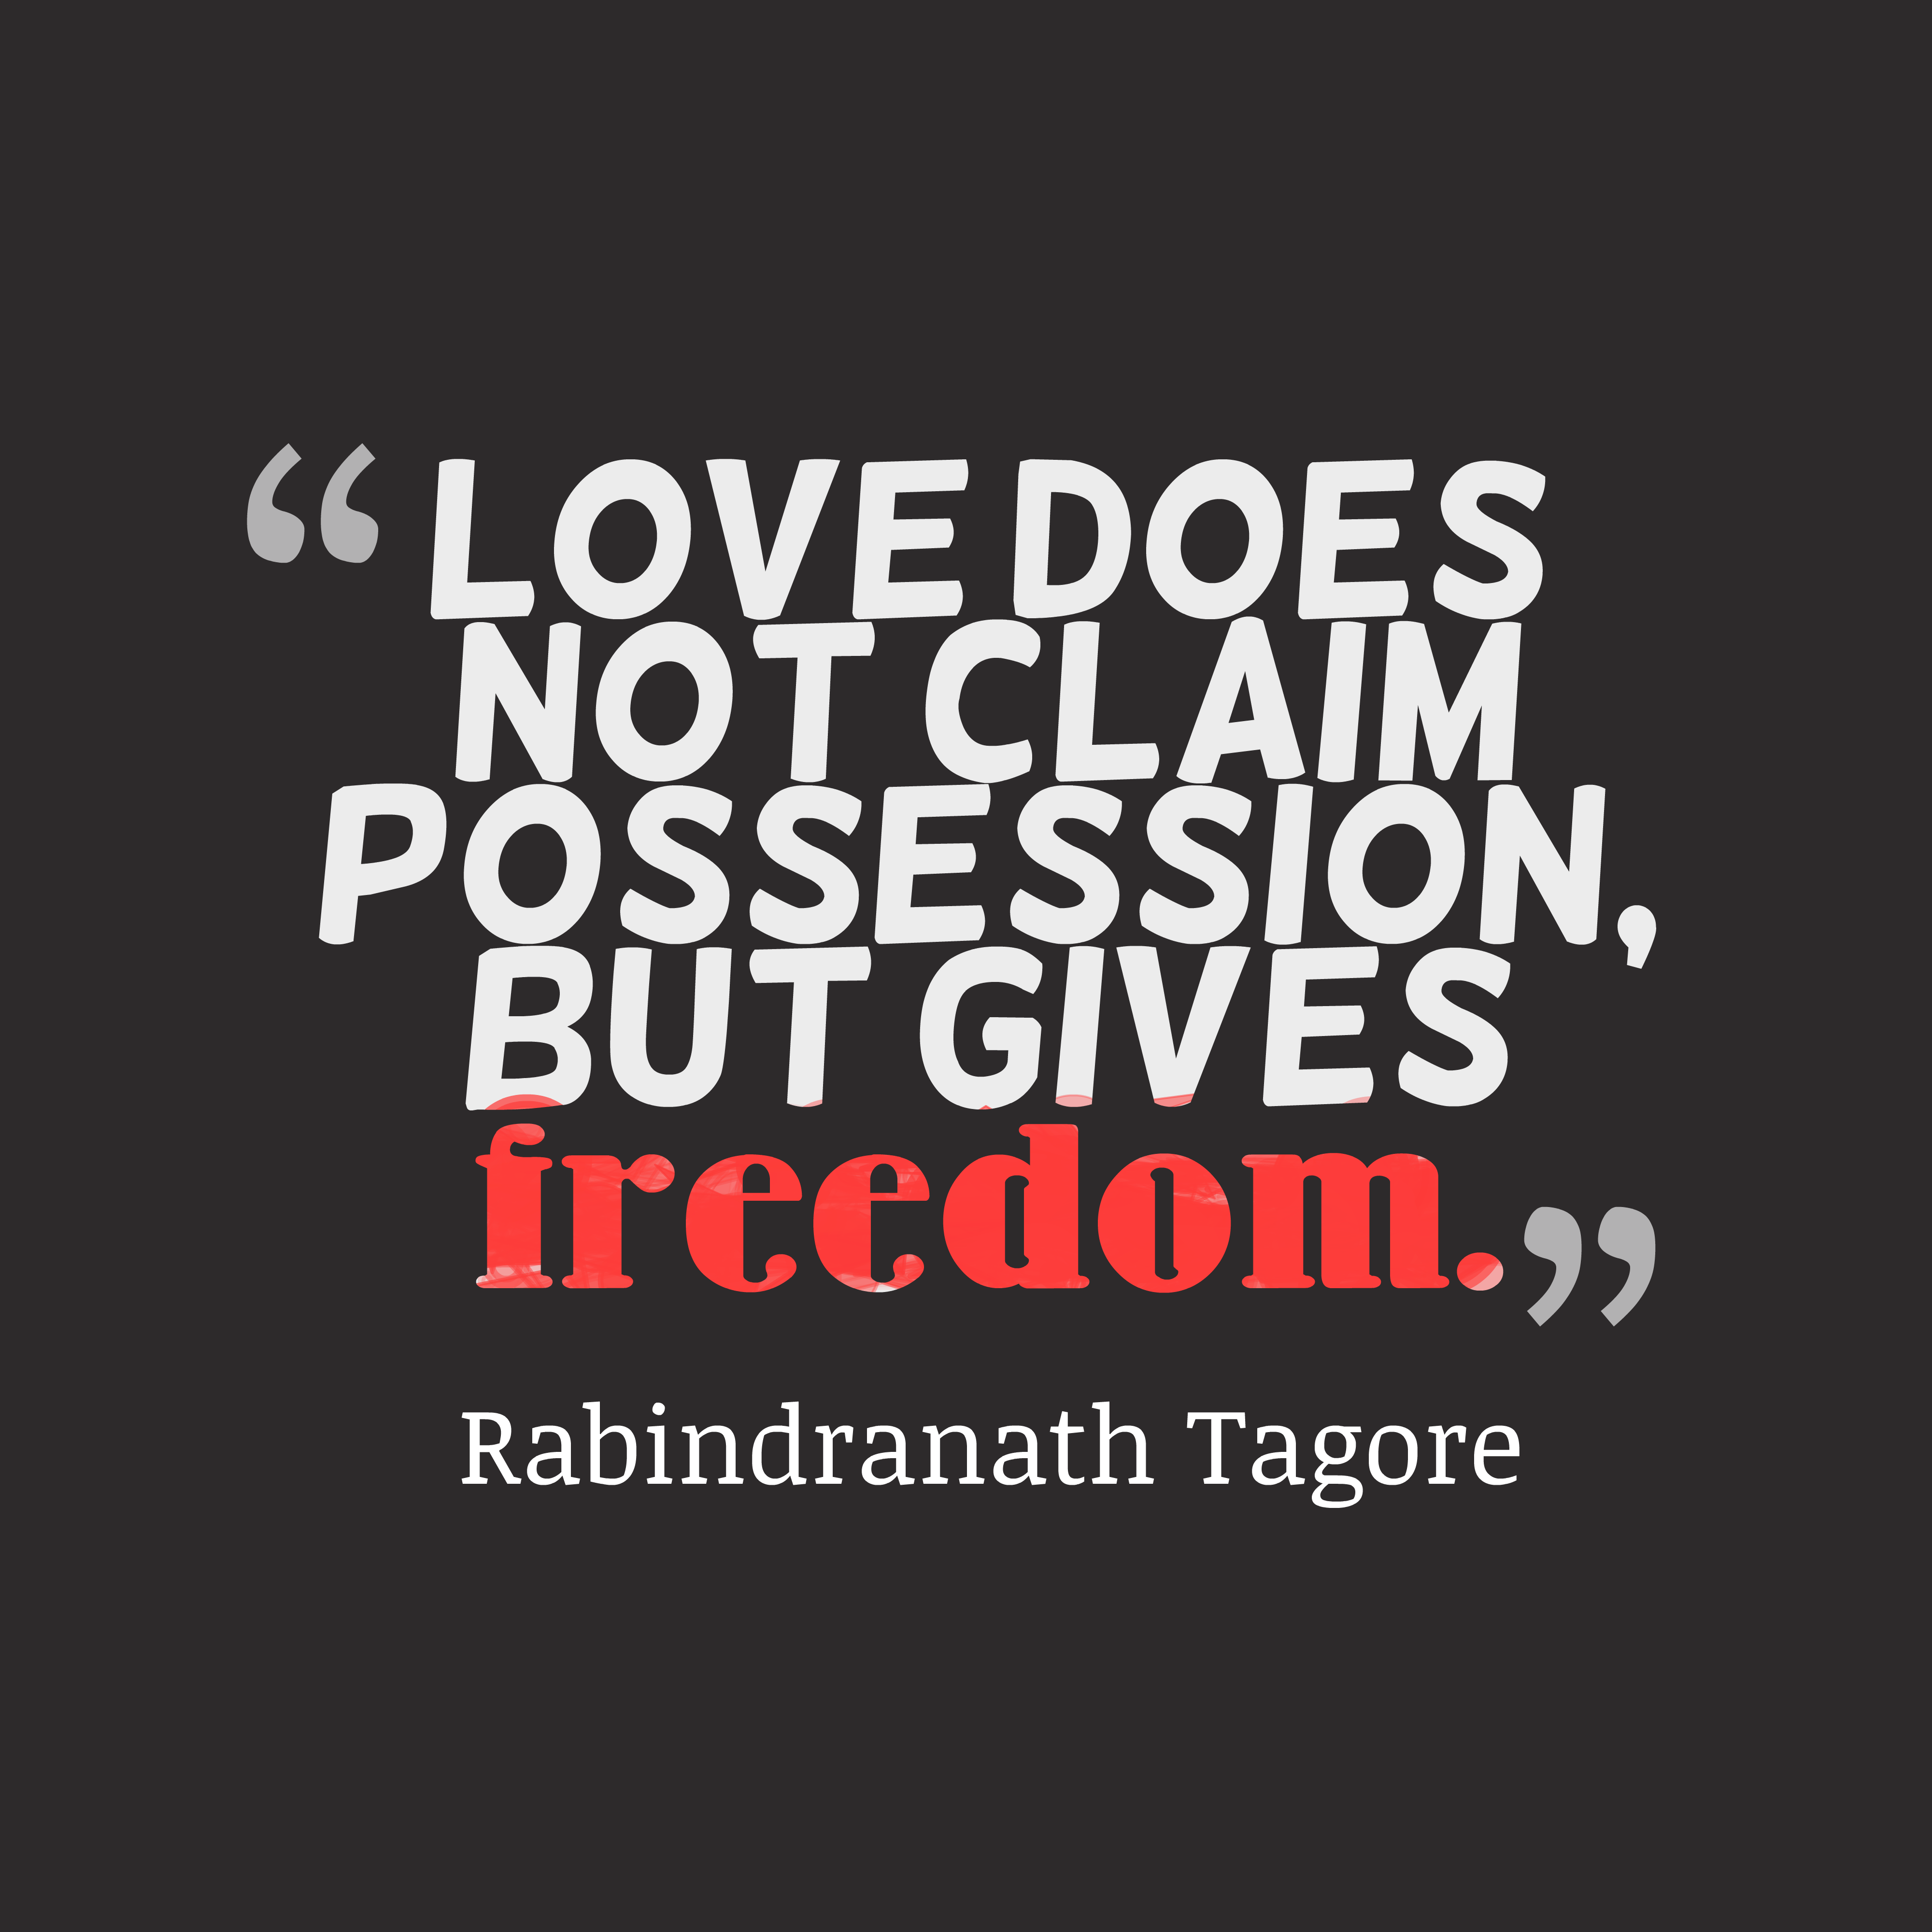 tagore on love submited images